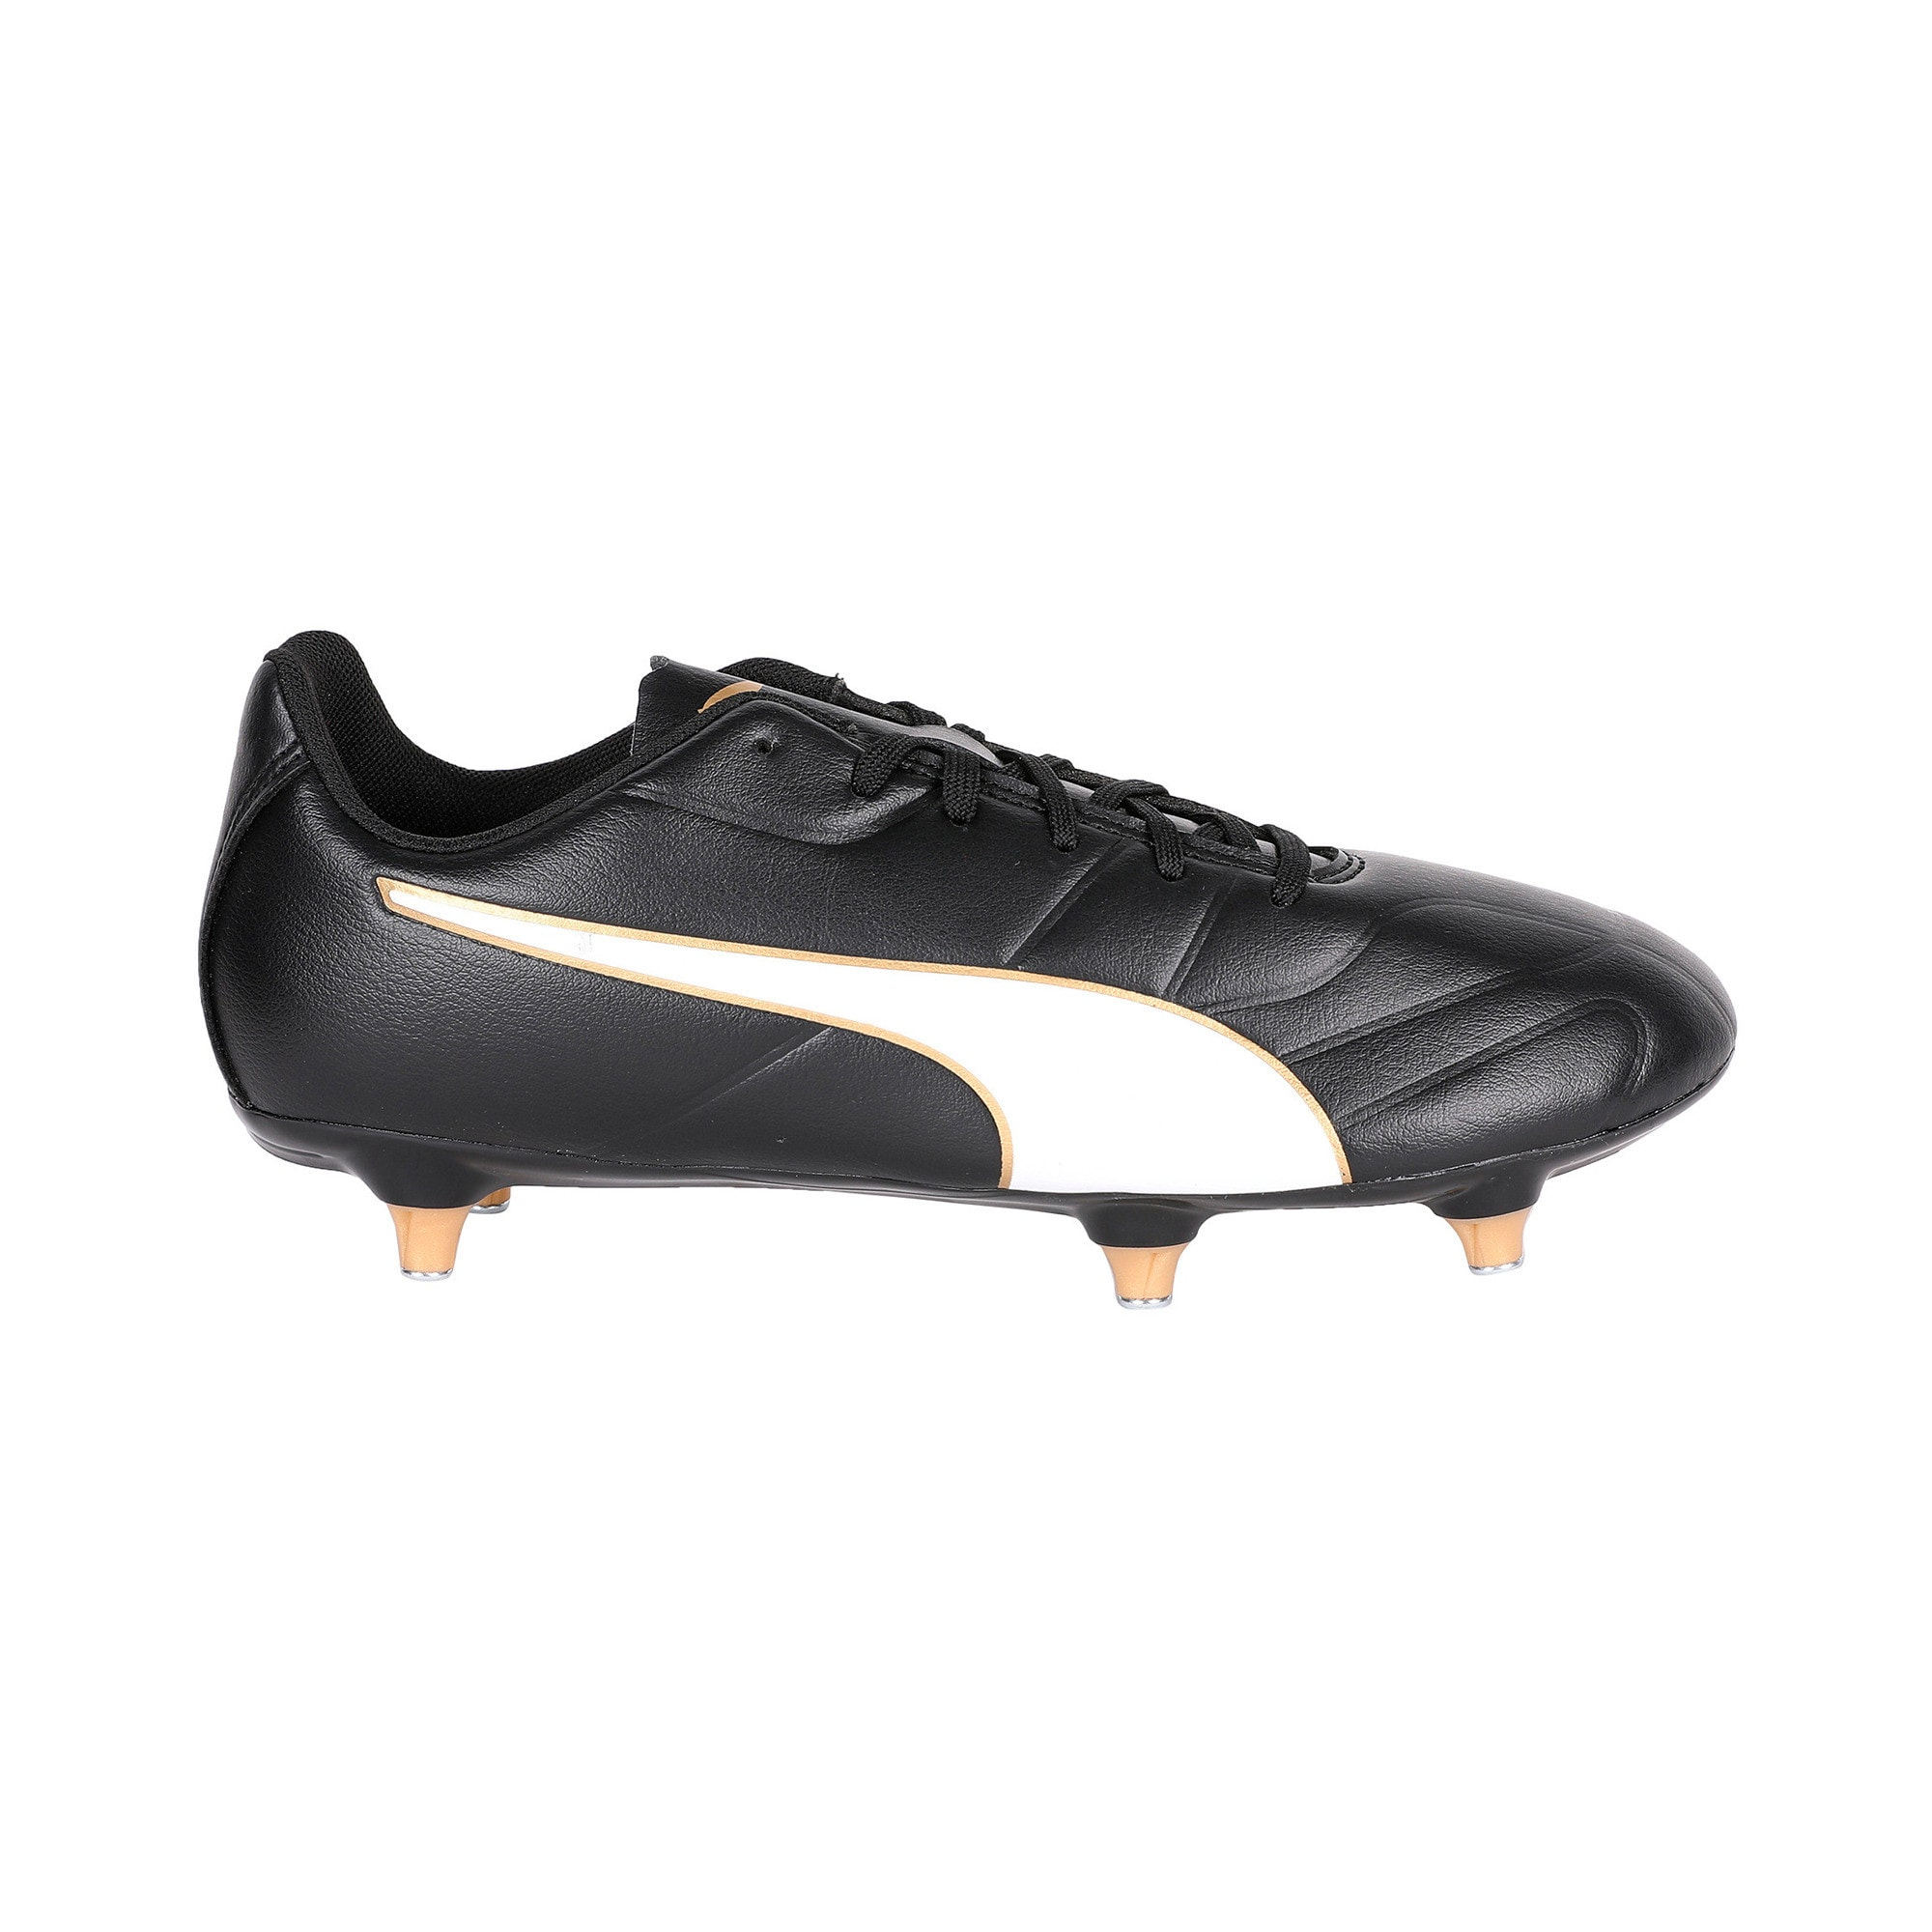 Thumbnail 5 of Classico C II SG Men's Football Boots, Black-White-Gold, medium-IND